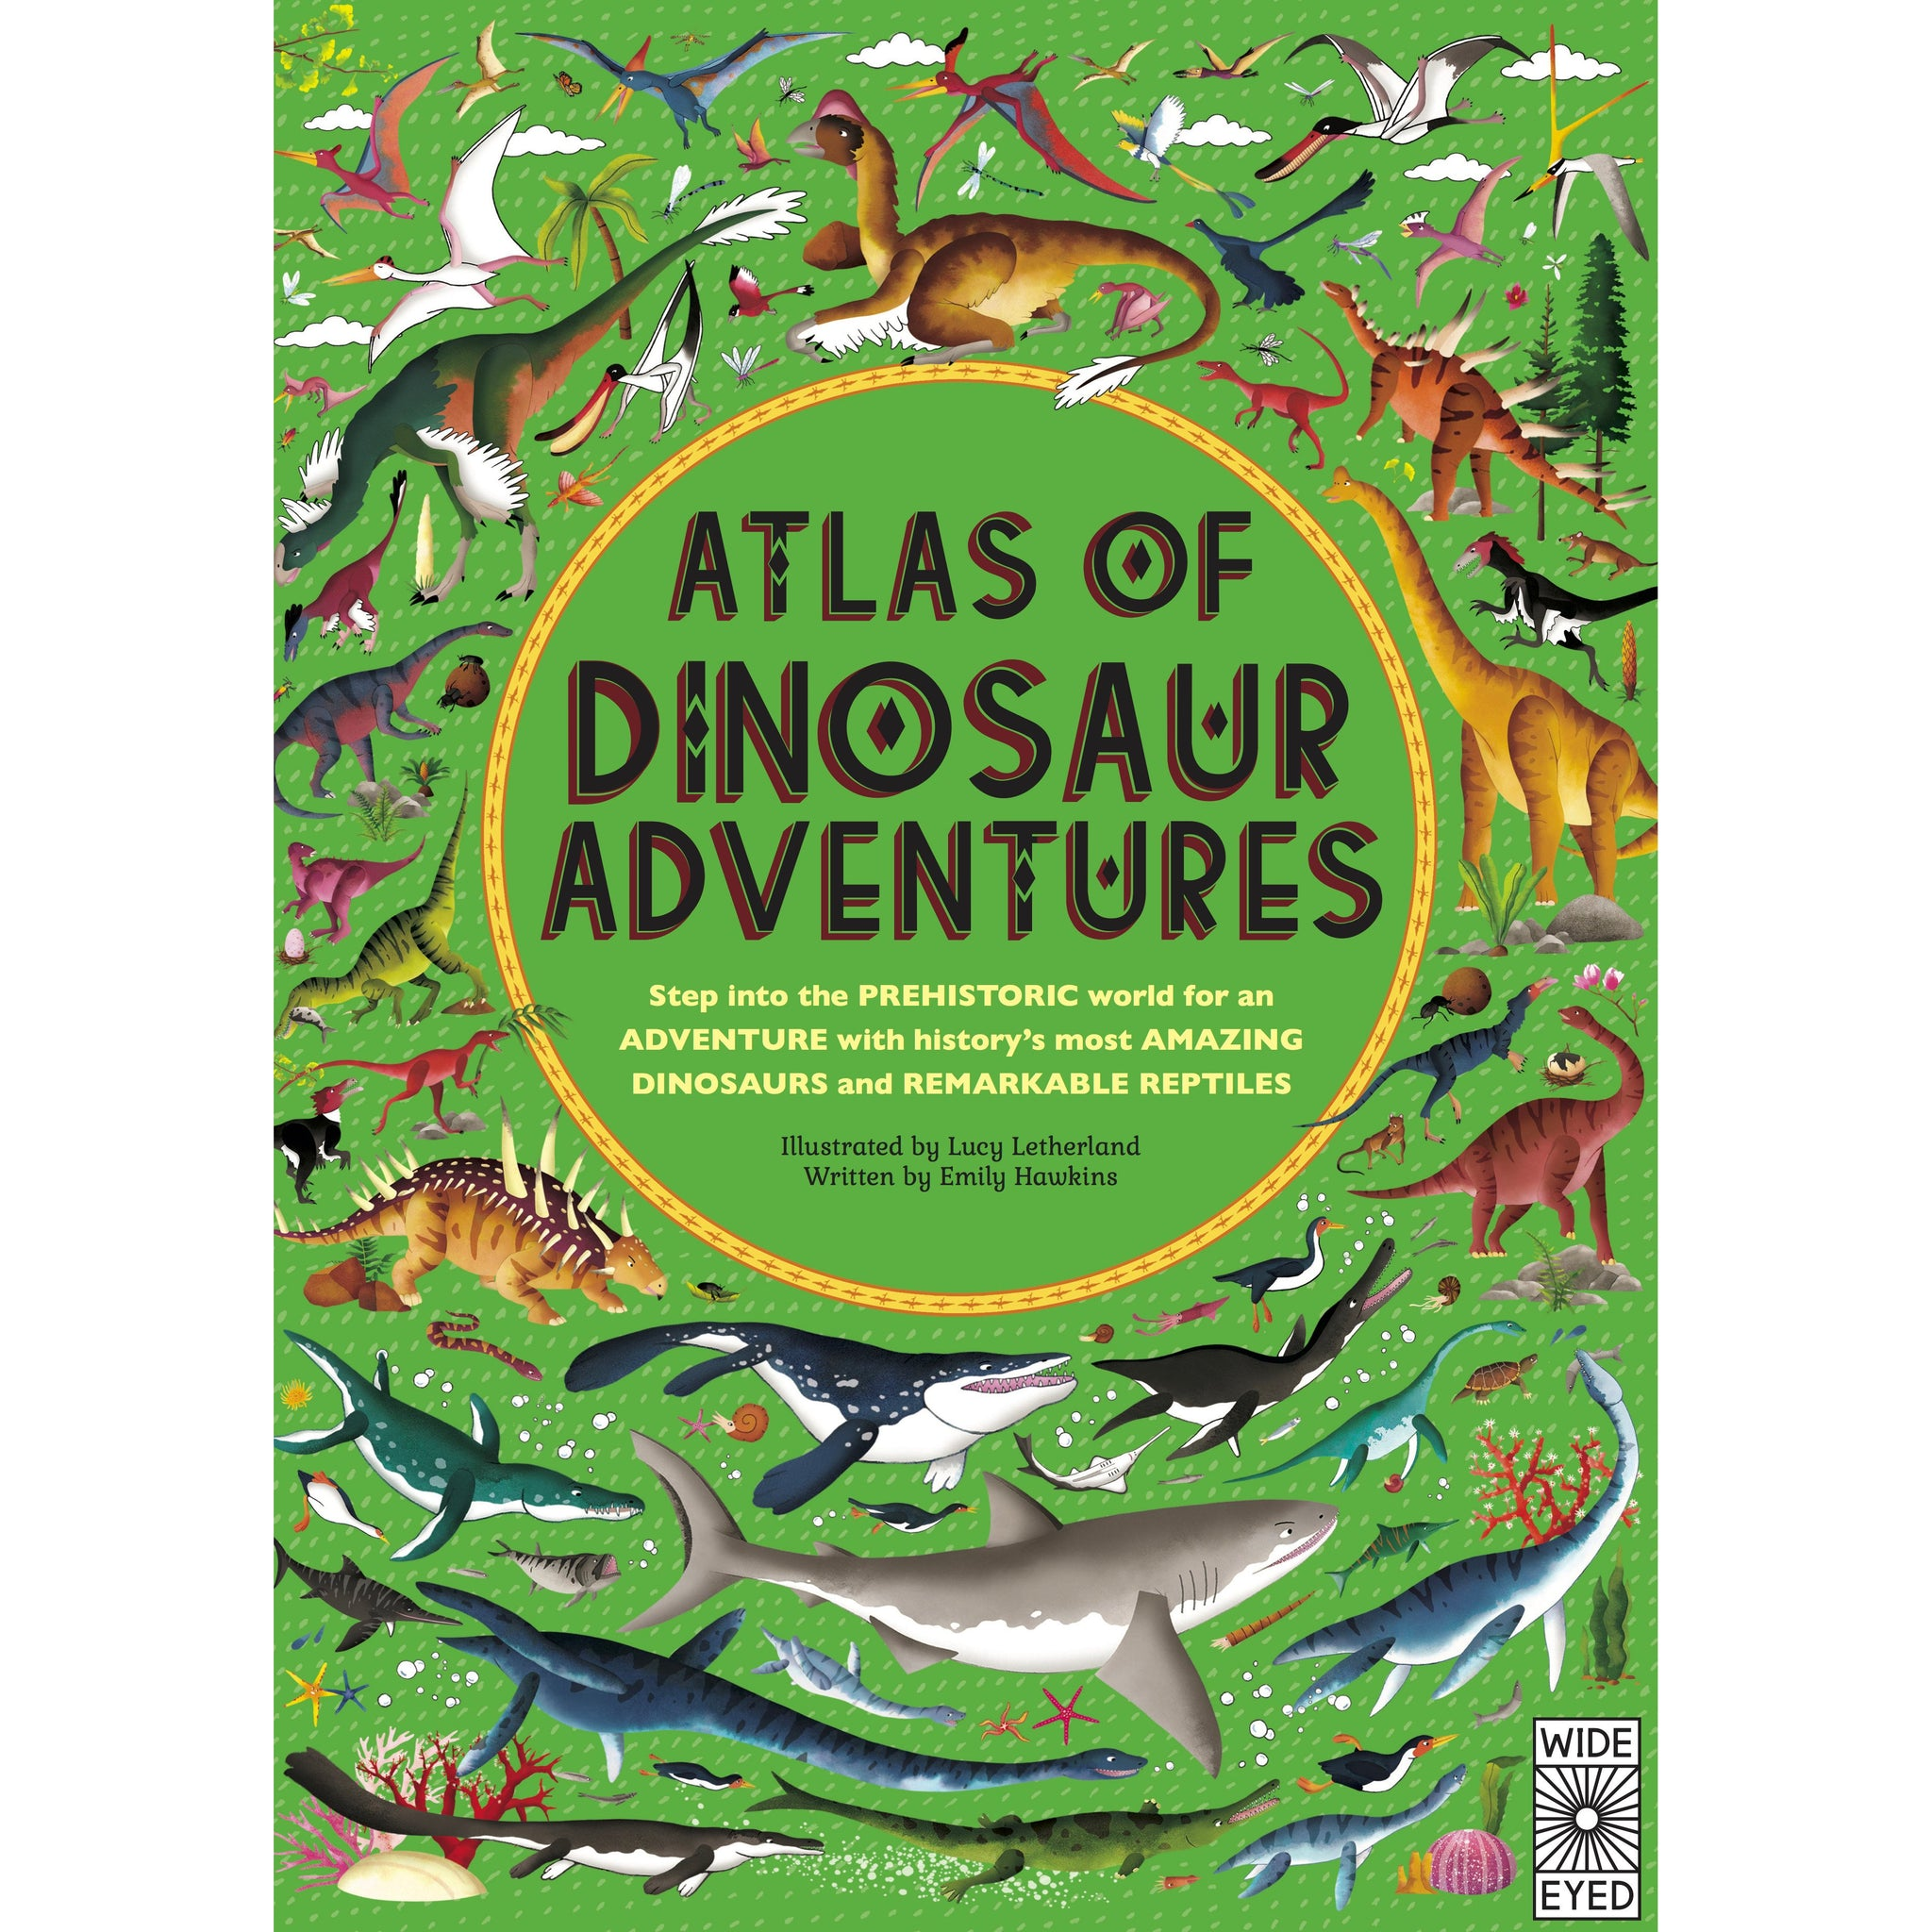 Atlas of Dinosaur Adventures Book Little Earth Nest Books at Little Earth Nest Eco Shop